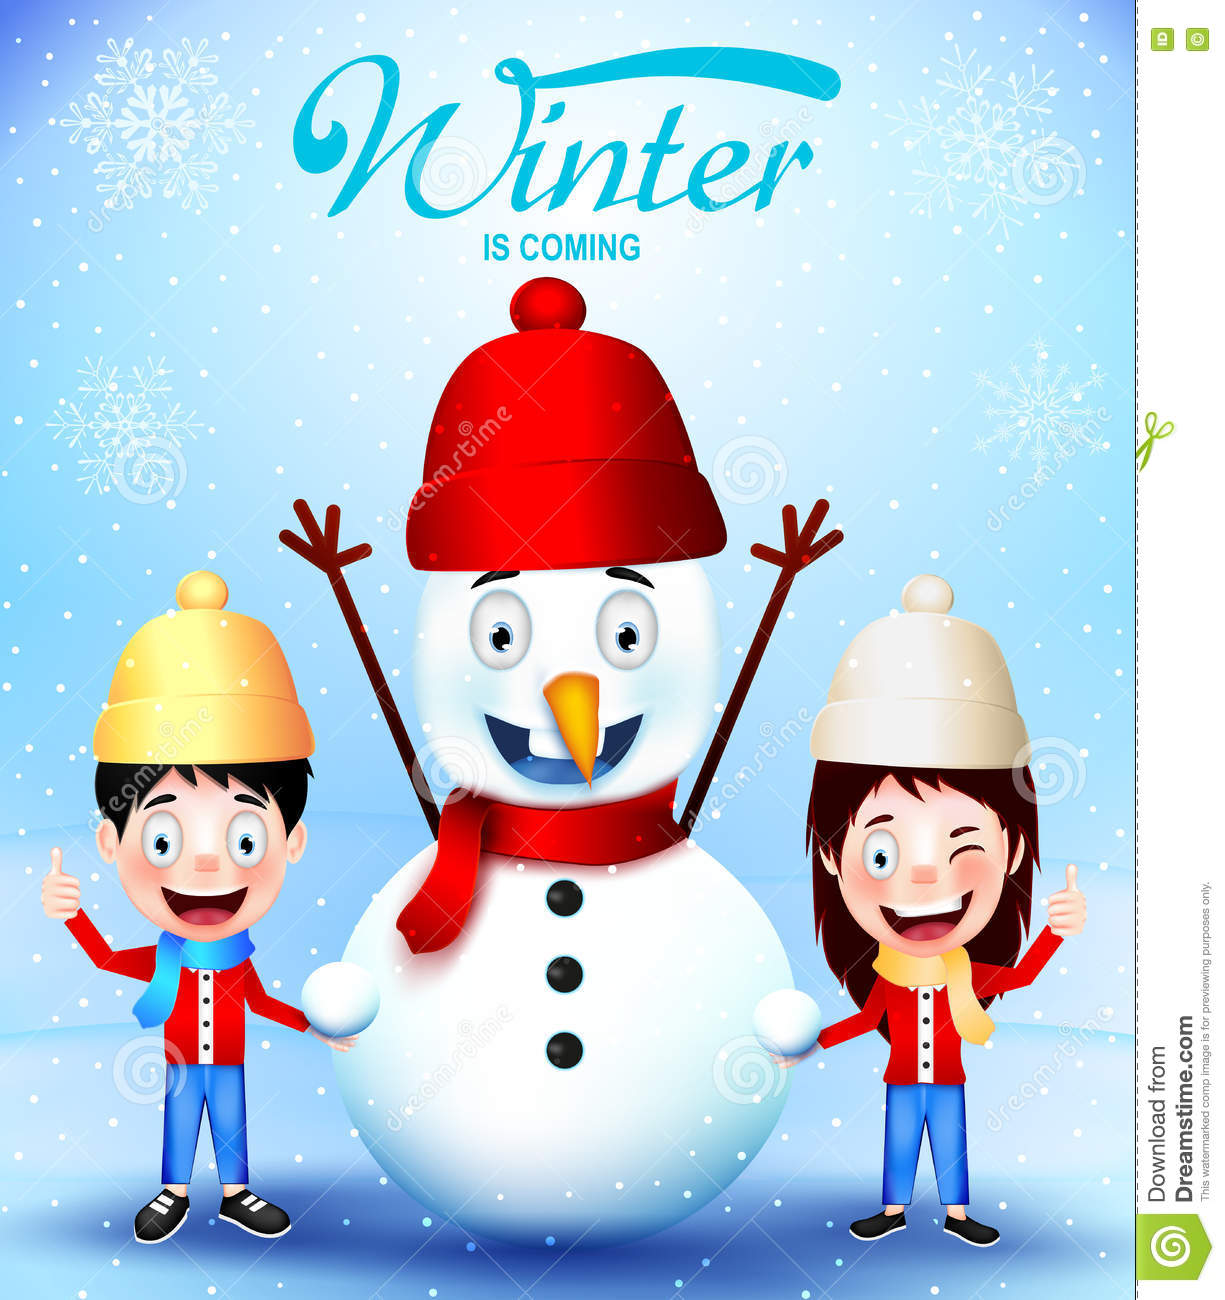 Winter is coming with kids vector characters and snowman greeting winter is coming with kids vector characters and snowman greeting card kristyandbryce Gallery